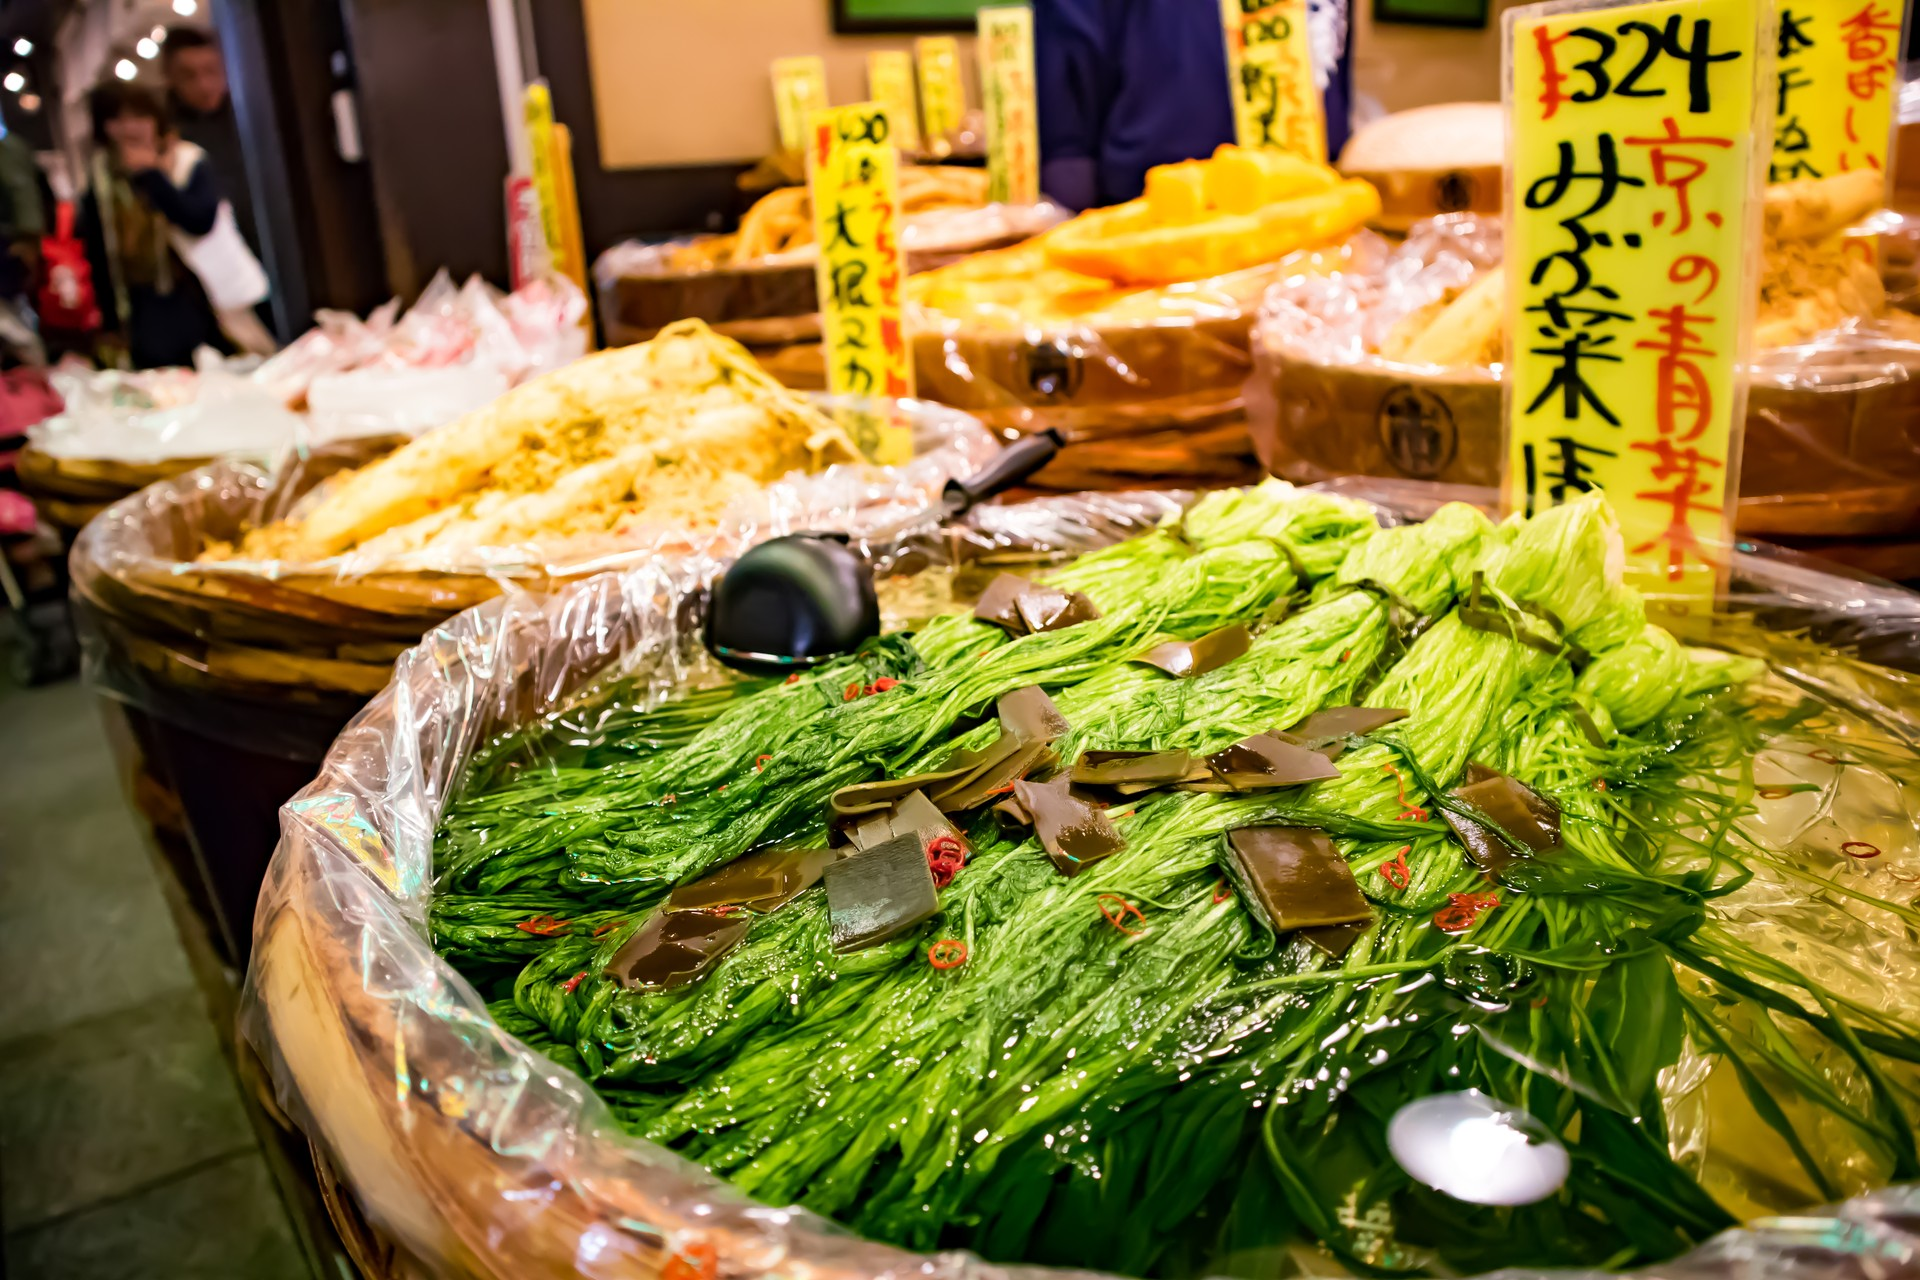 Japanese ingredients on offer in the Nishiki Market in Kyoto